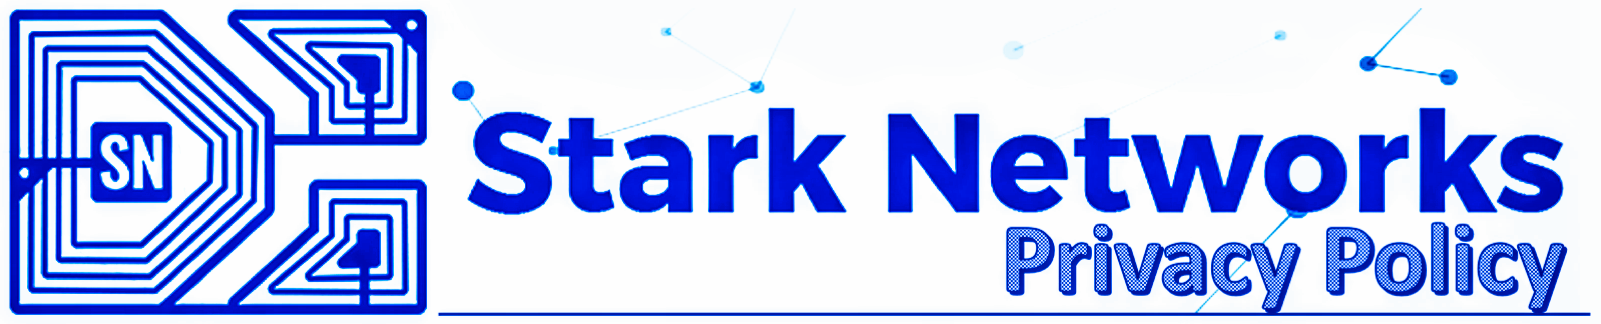 Stark Networks Privacy Policy Banner